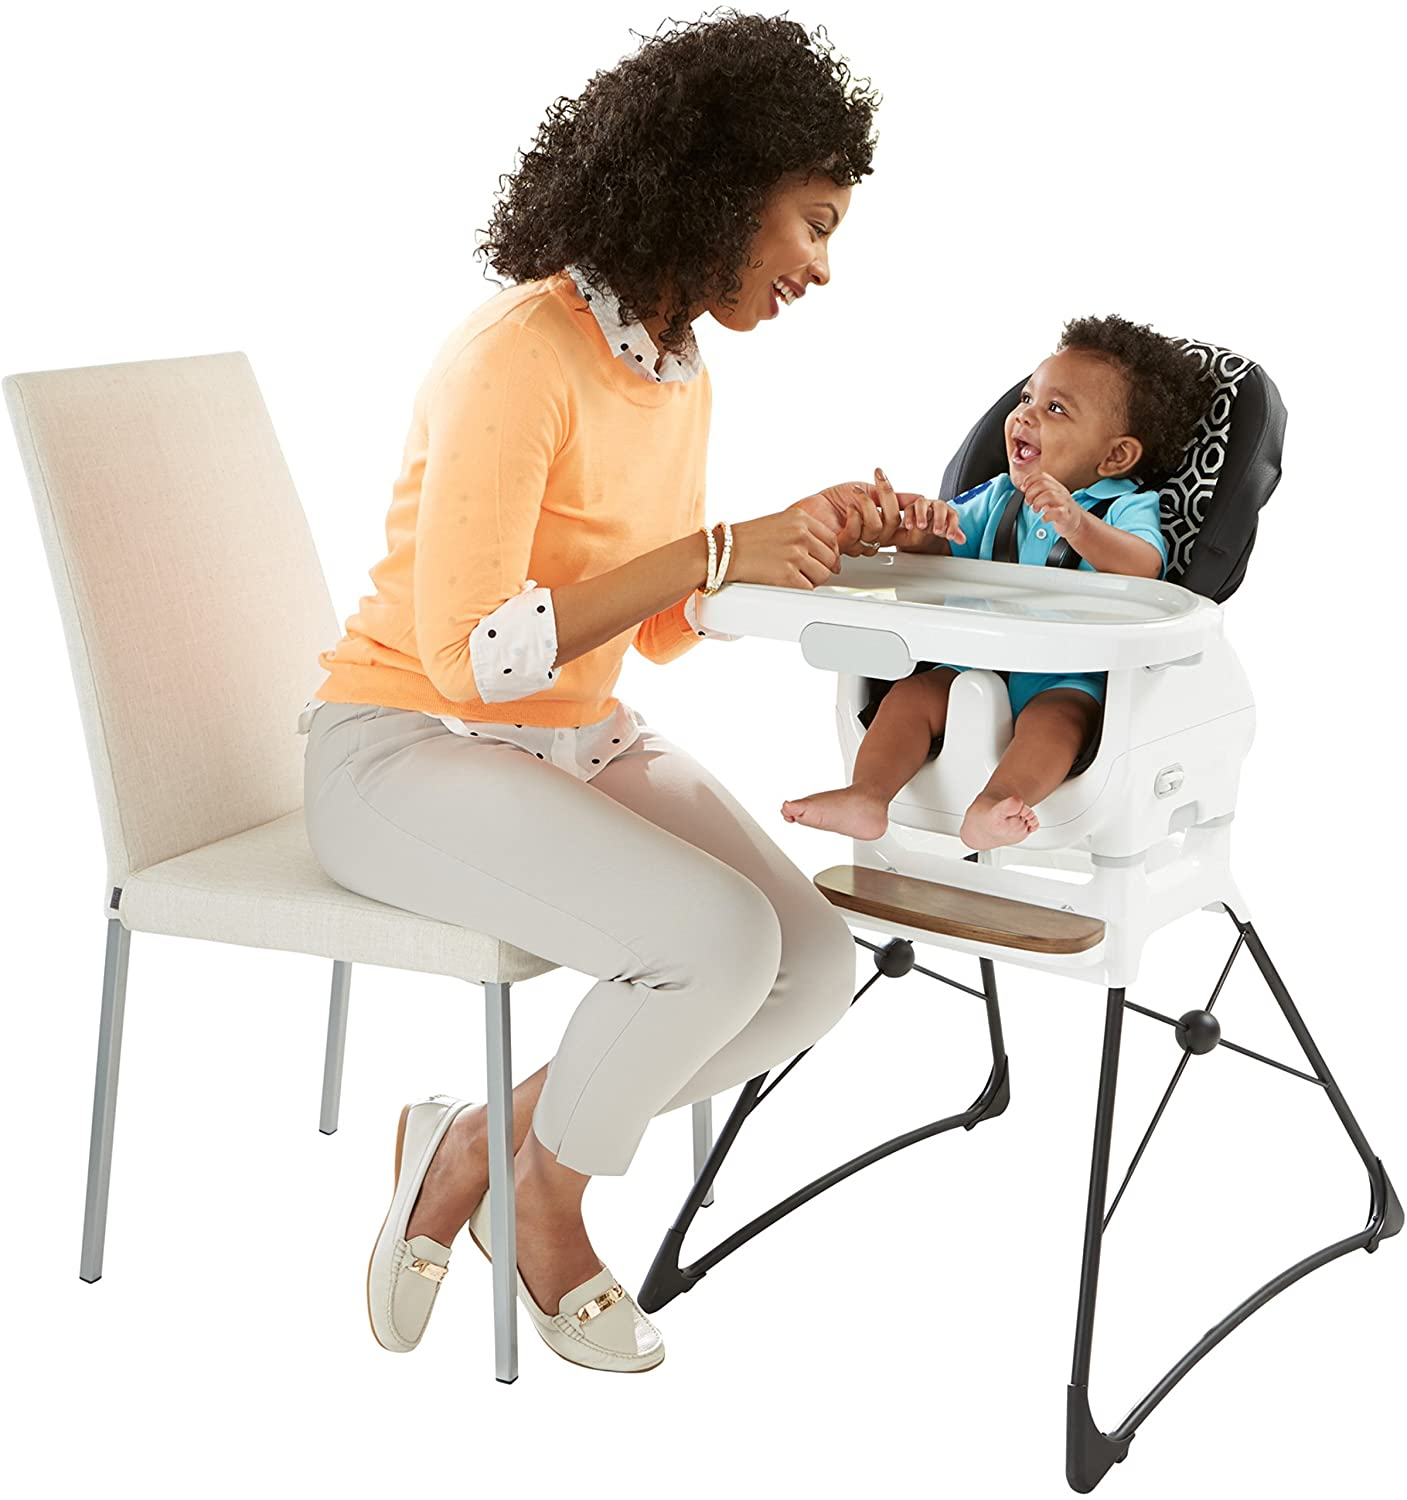 Fisher-Price Jonathan Adler Deluxe High Chair, Black White